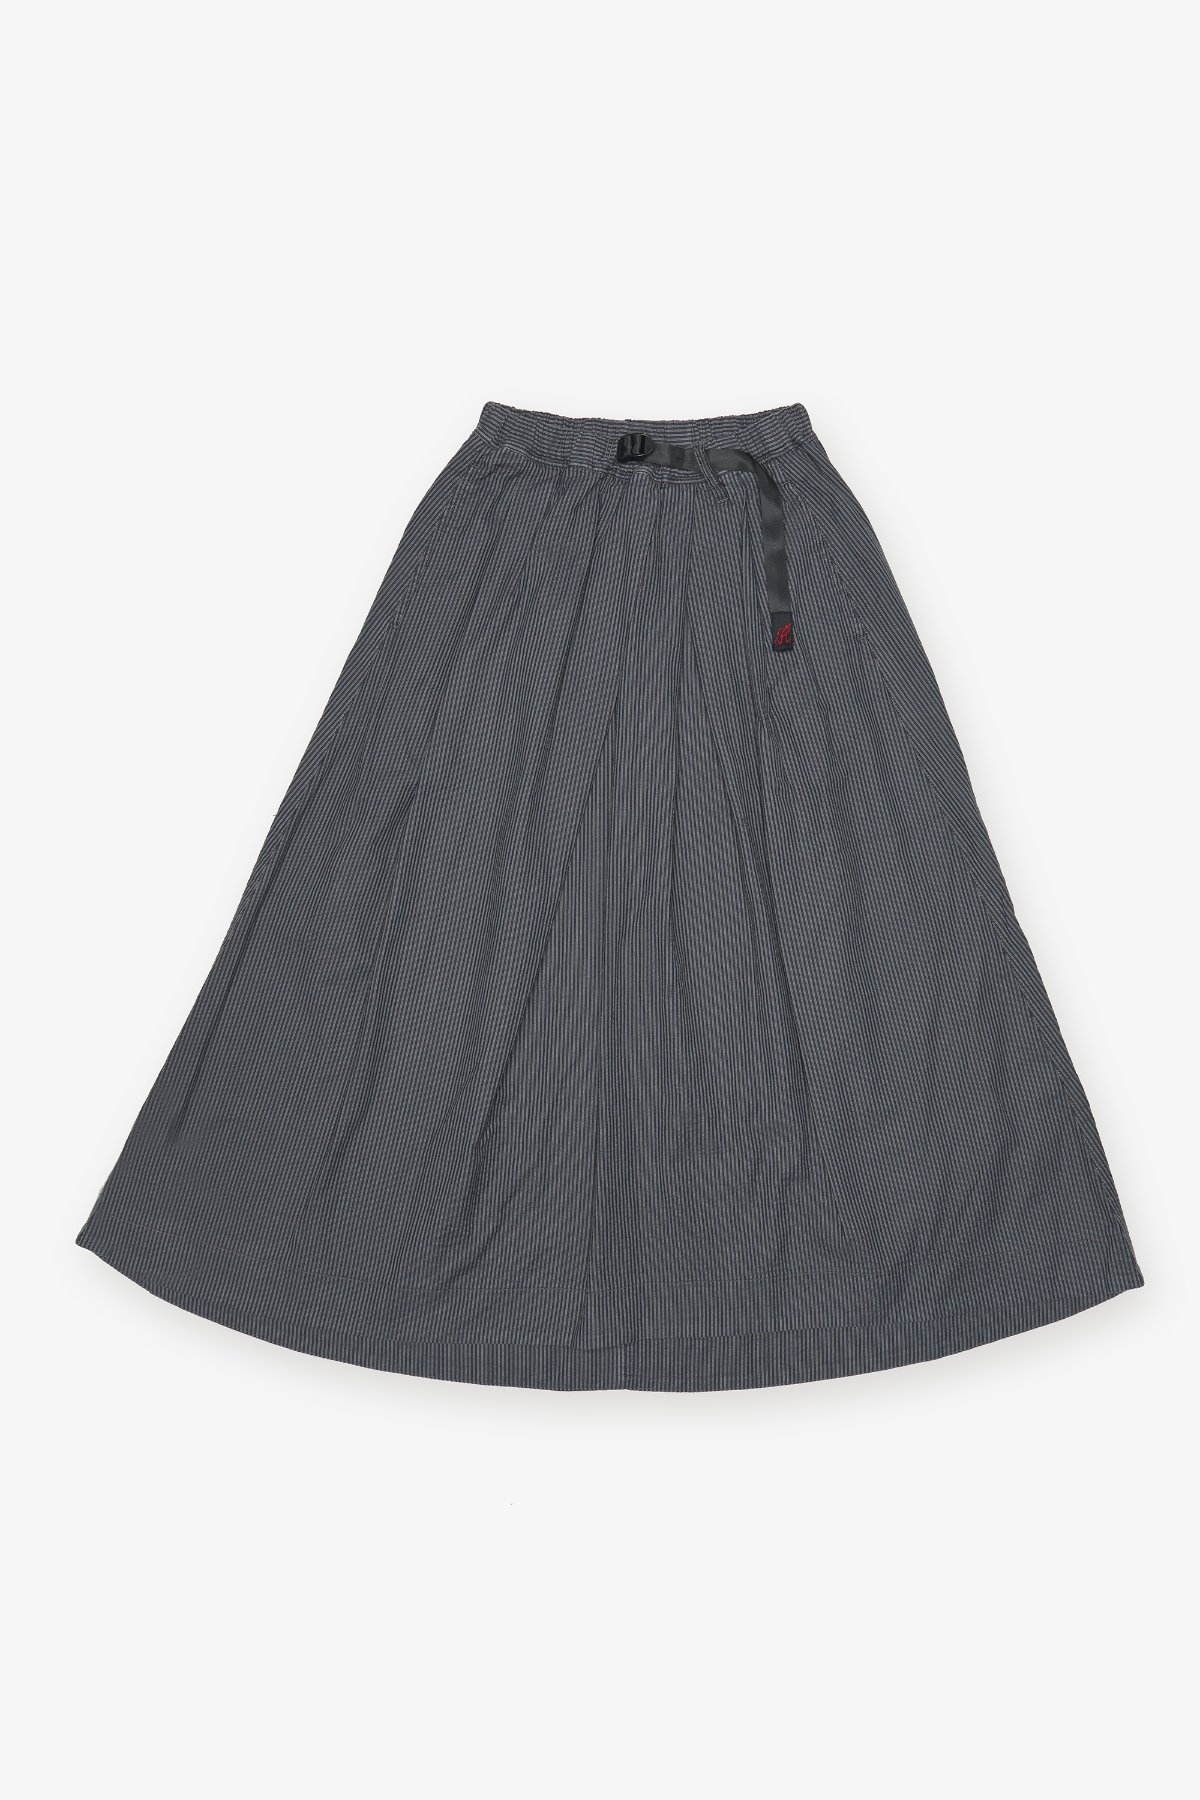 SUCKER TALE CUT SKIRT CHARCOAL